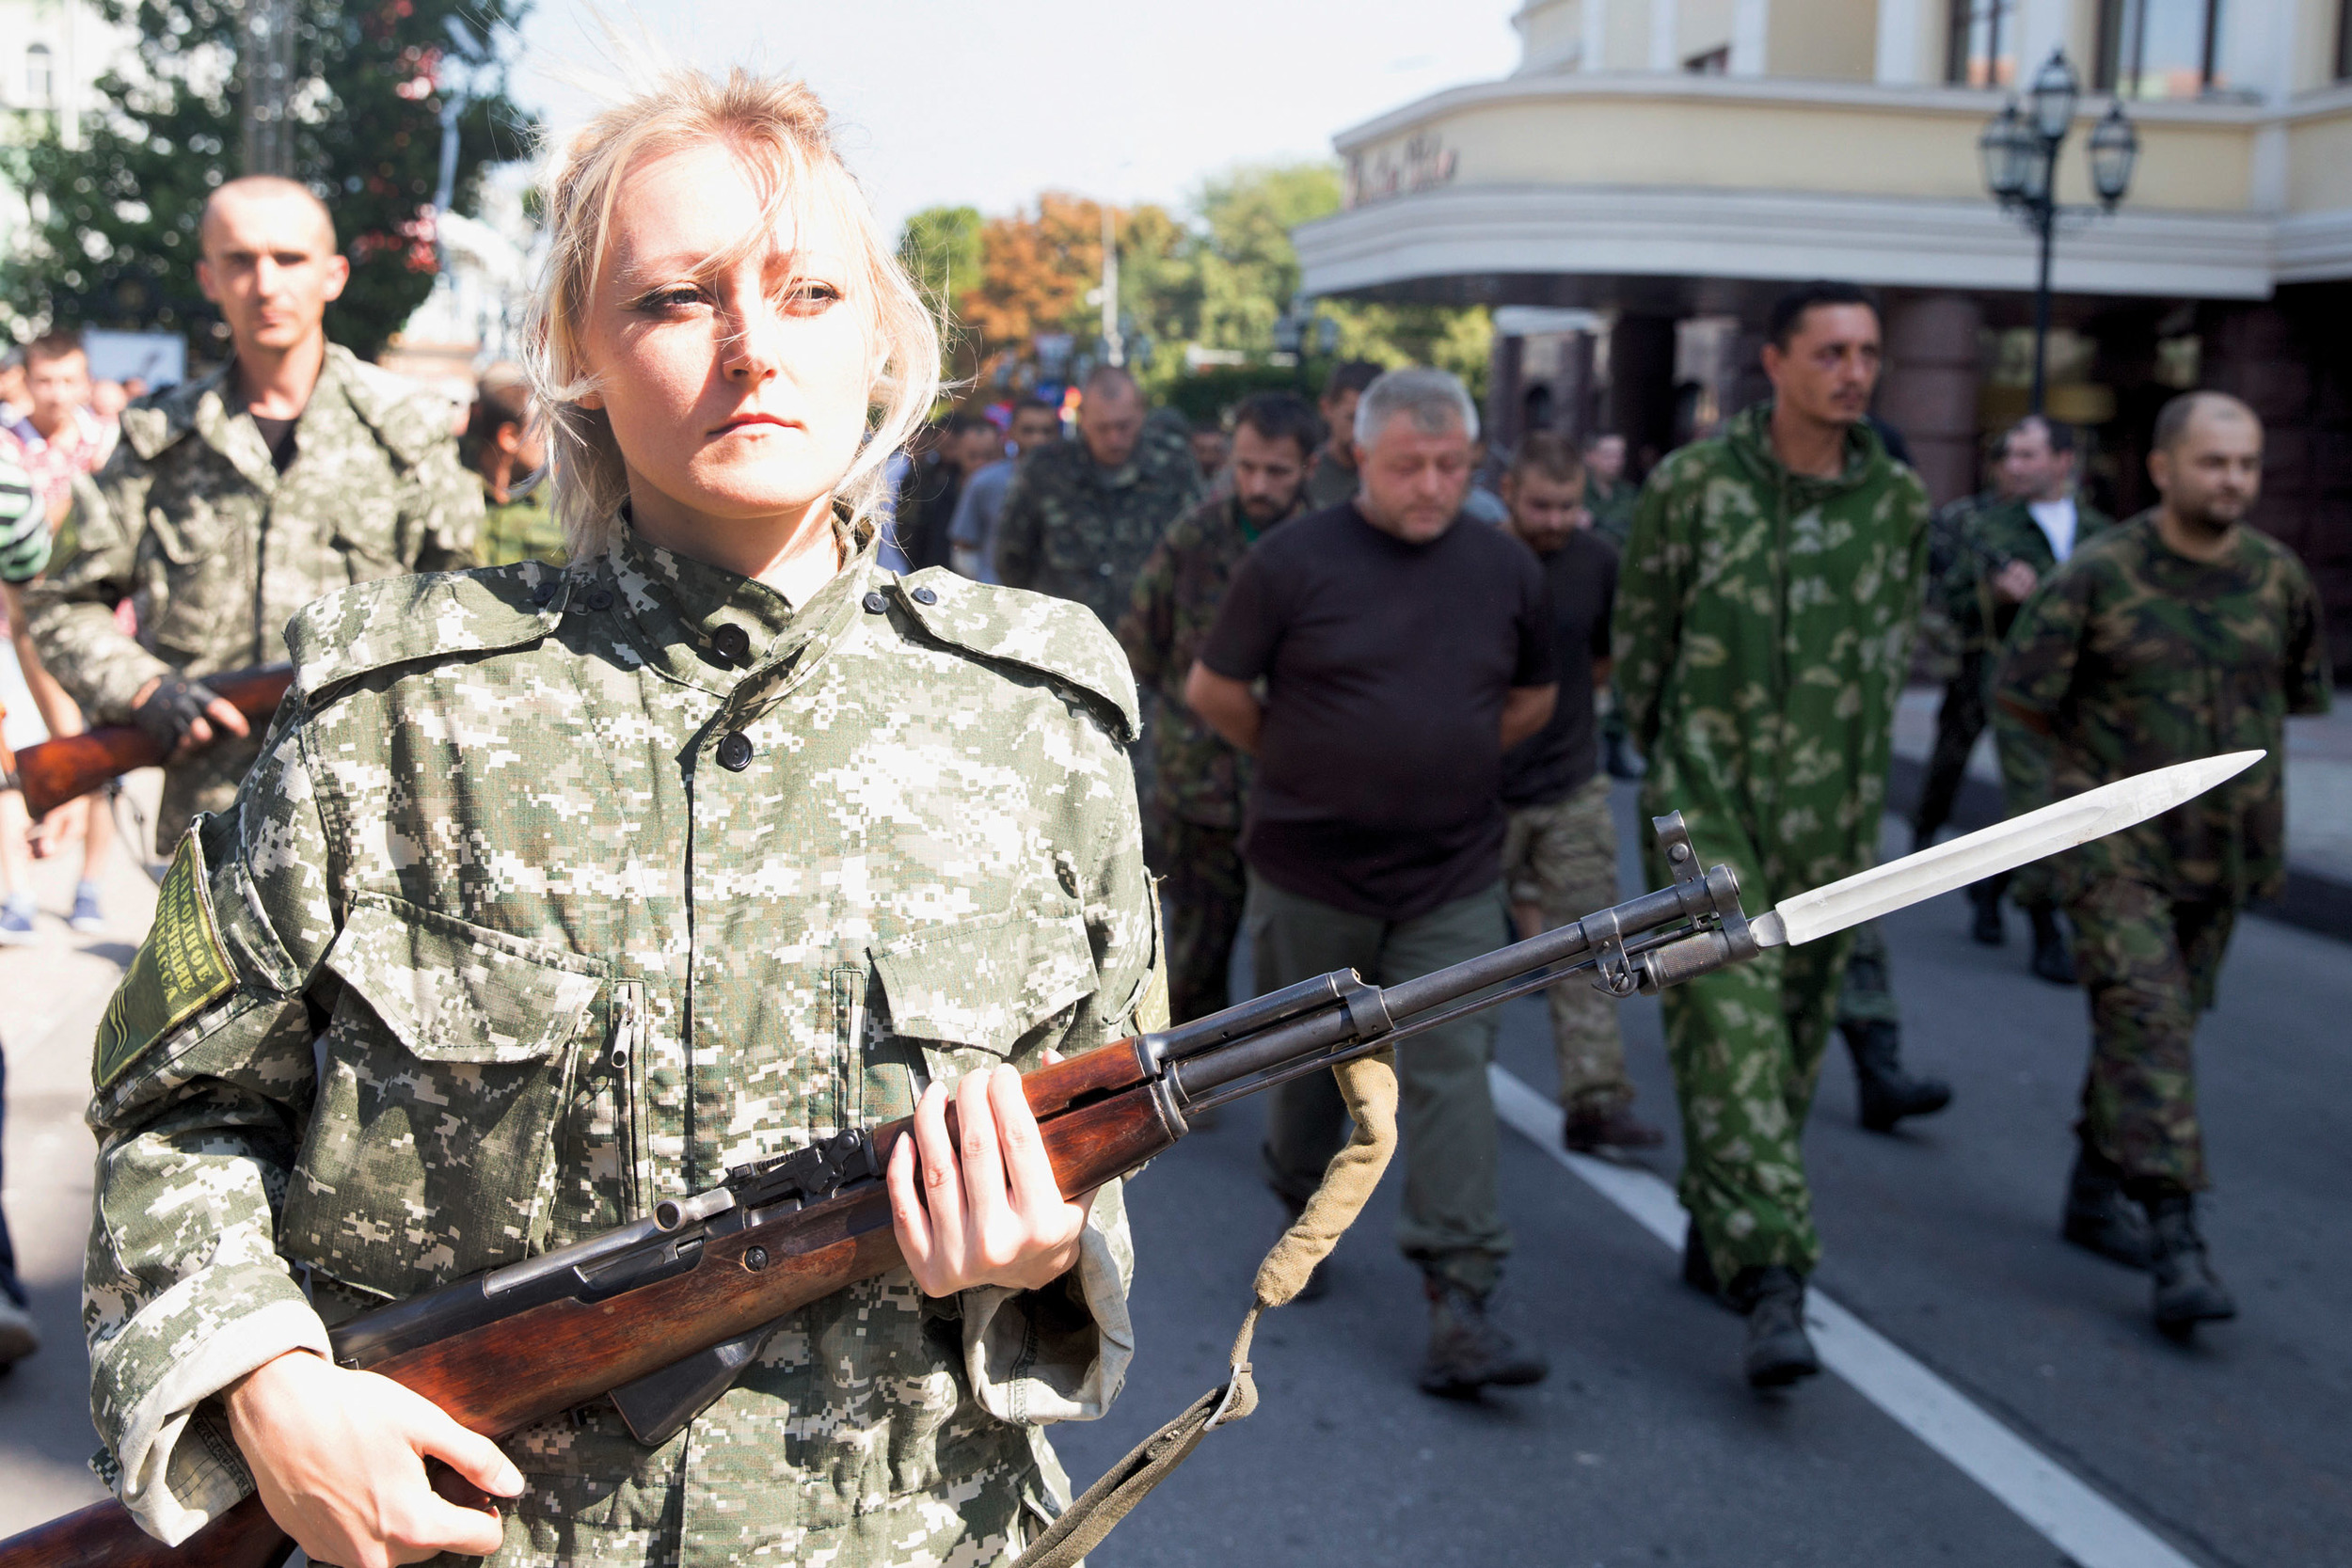 Pro-Russian fighters are seen escorting Ukrainian POWs on the streets of Donetsk